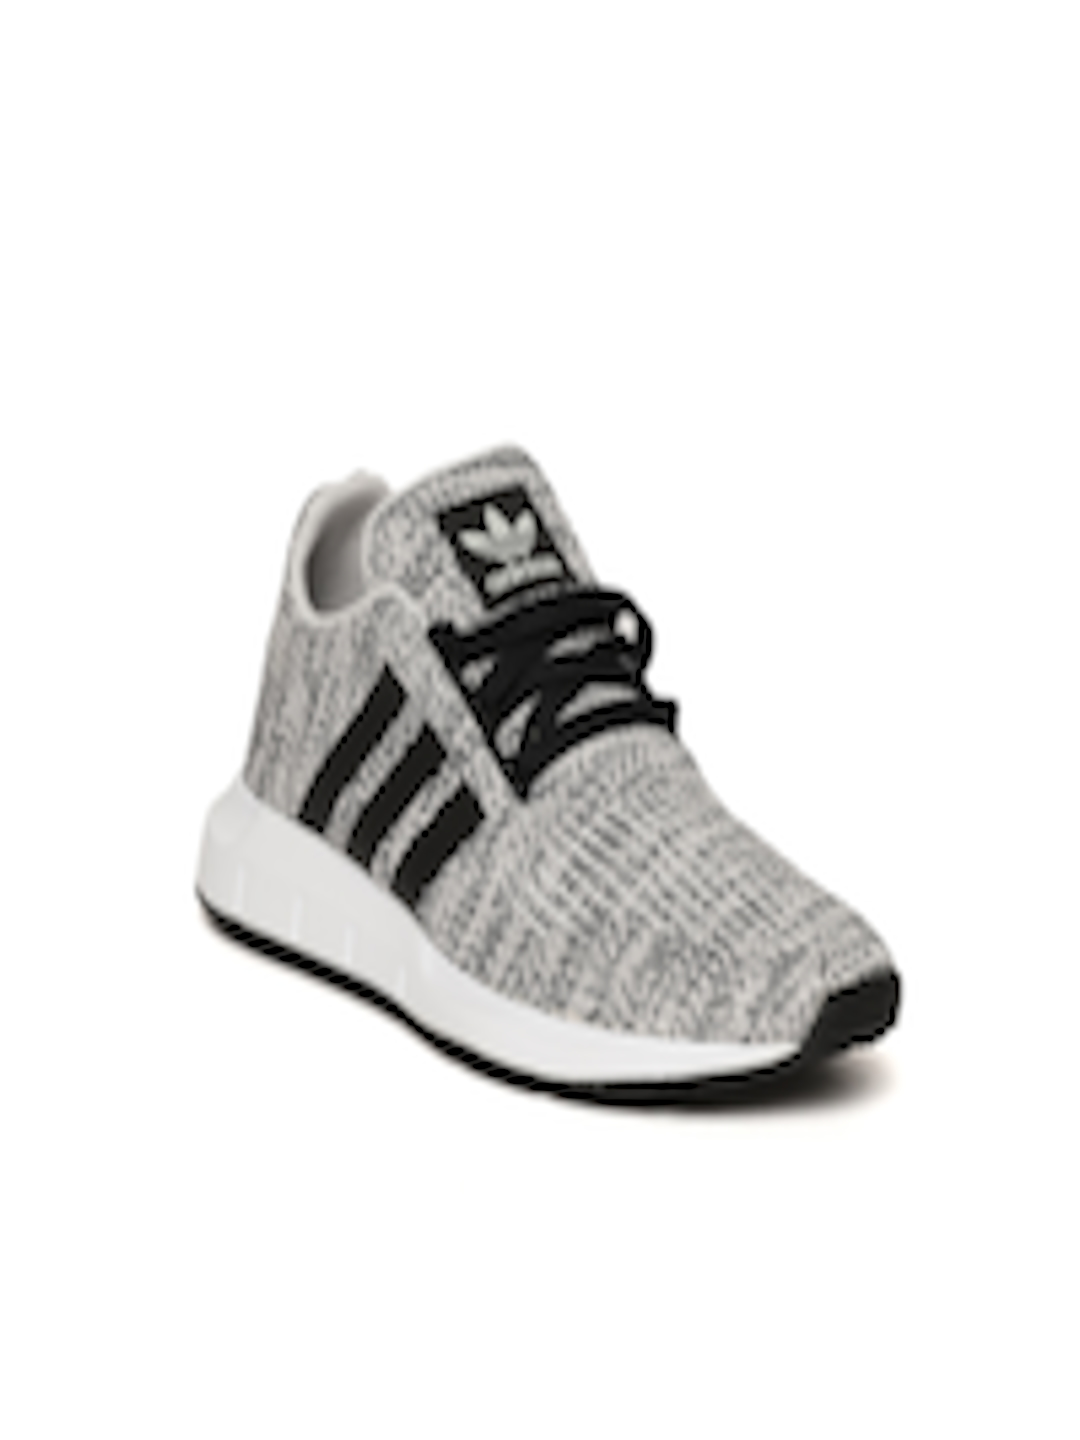 5daf724cdc7 Buy Adidas Originals Kids Grey   Black Swift Run J Patterned Sneakers - Casual  Shoes for Unisex 6842459